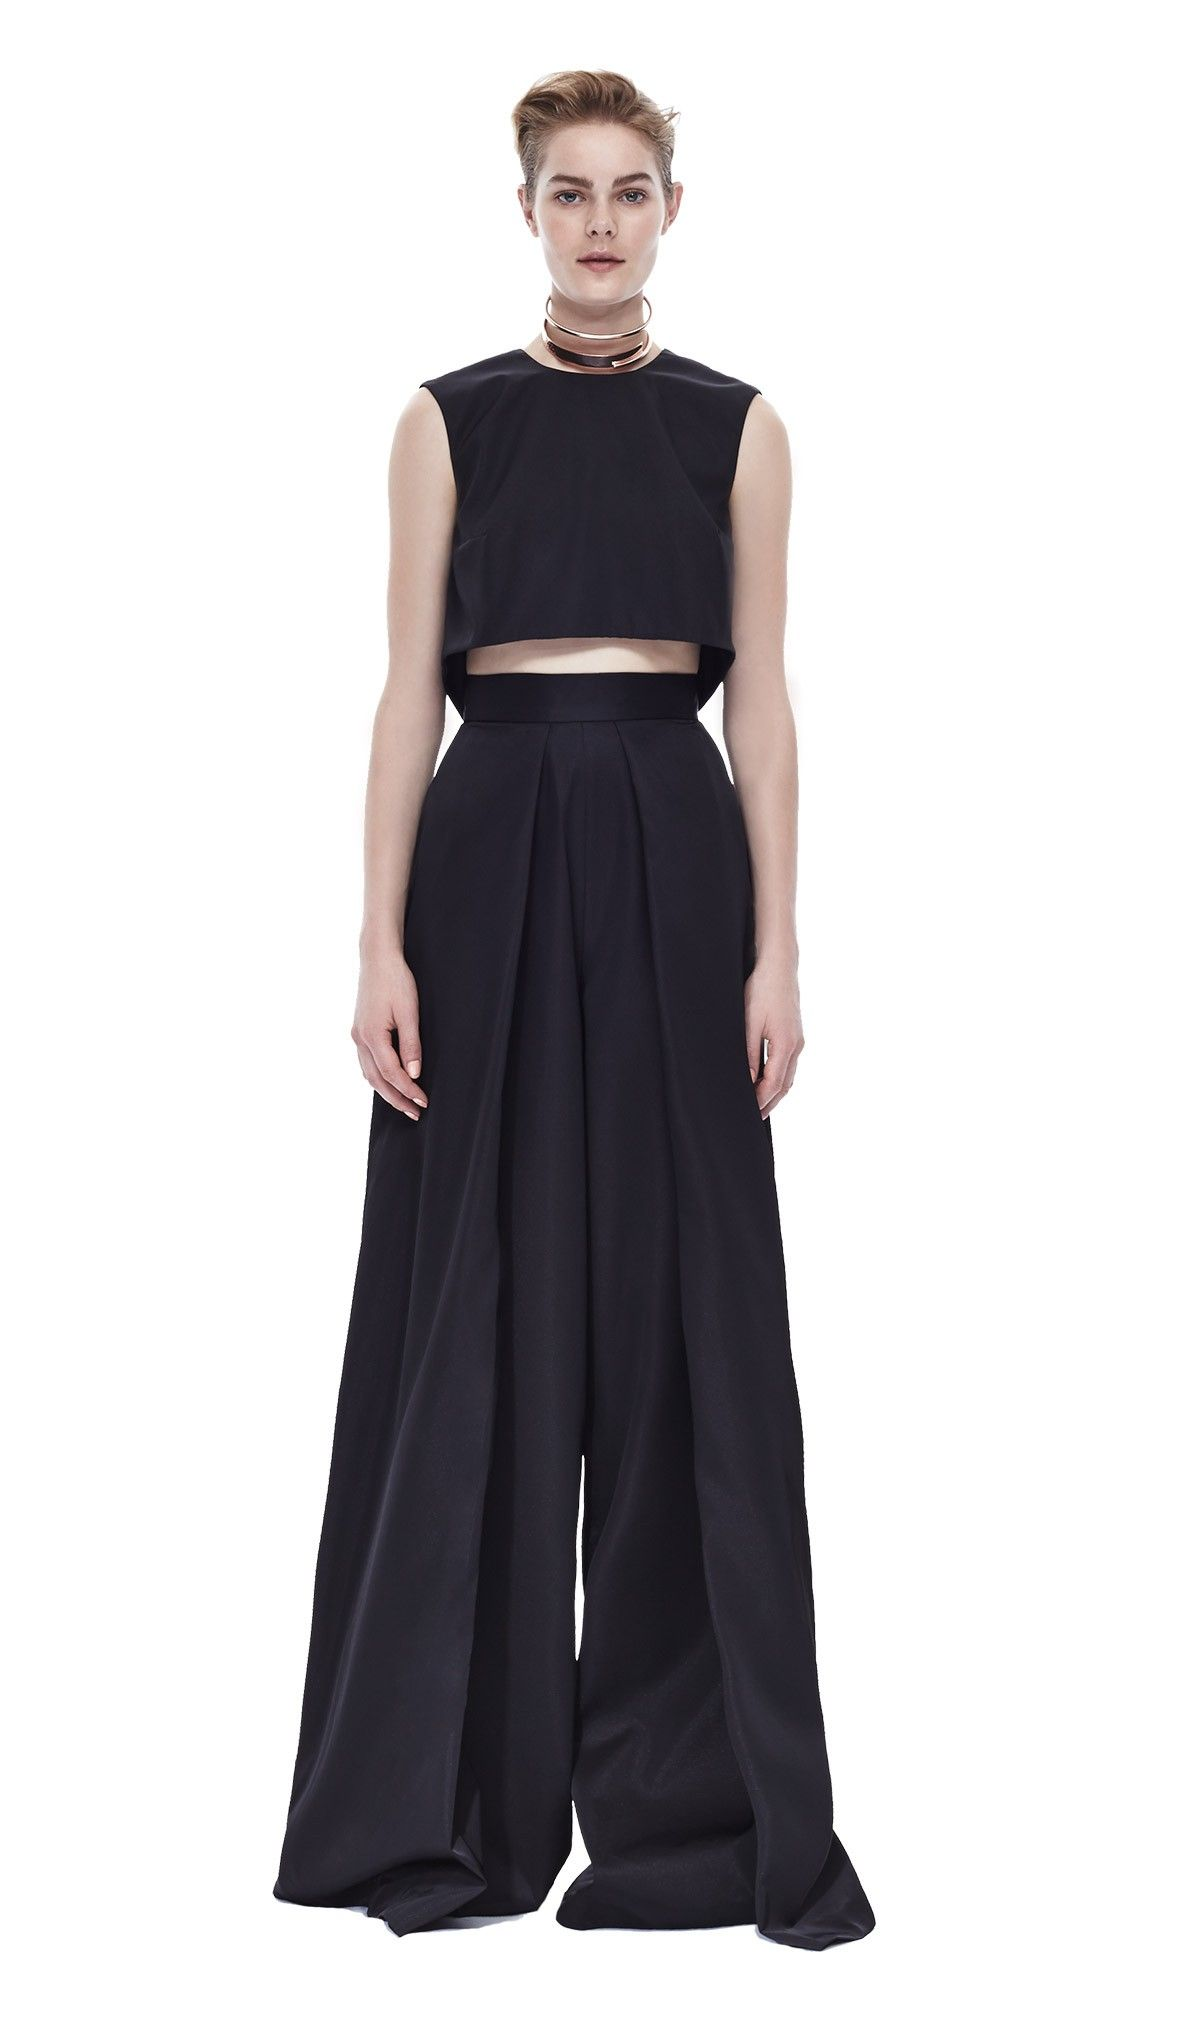 Super Wide Leg Pants | FLARES TO REMEMBER 62 | Pinterest | Wide ...